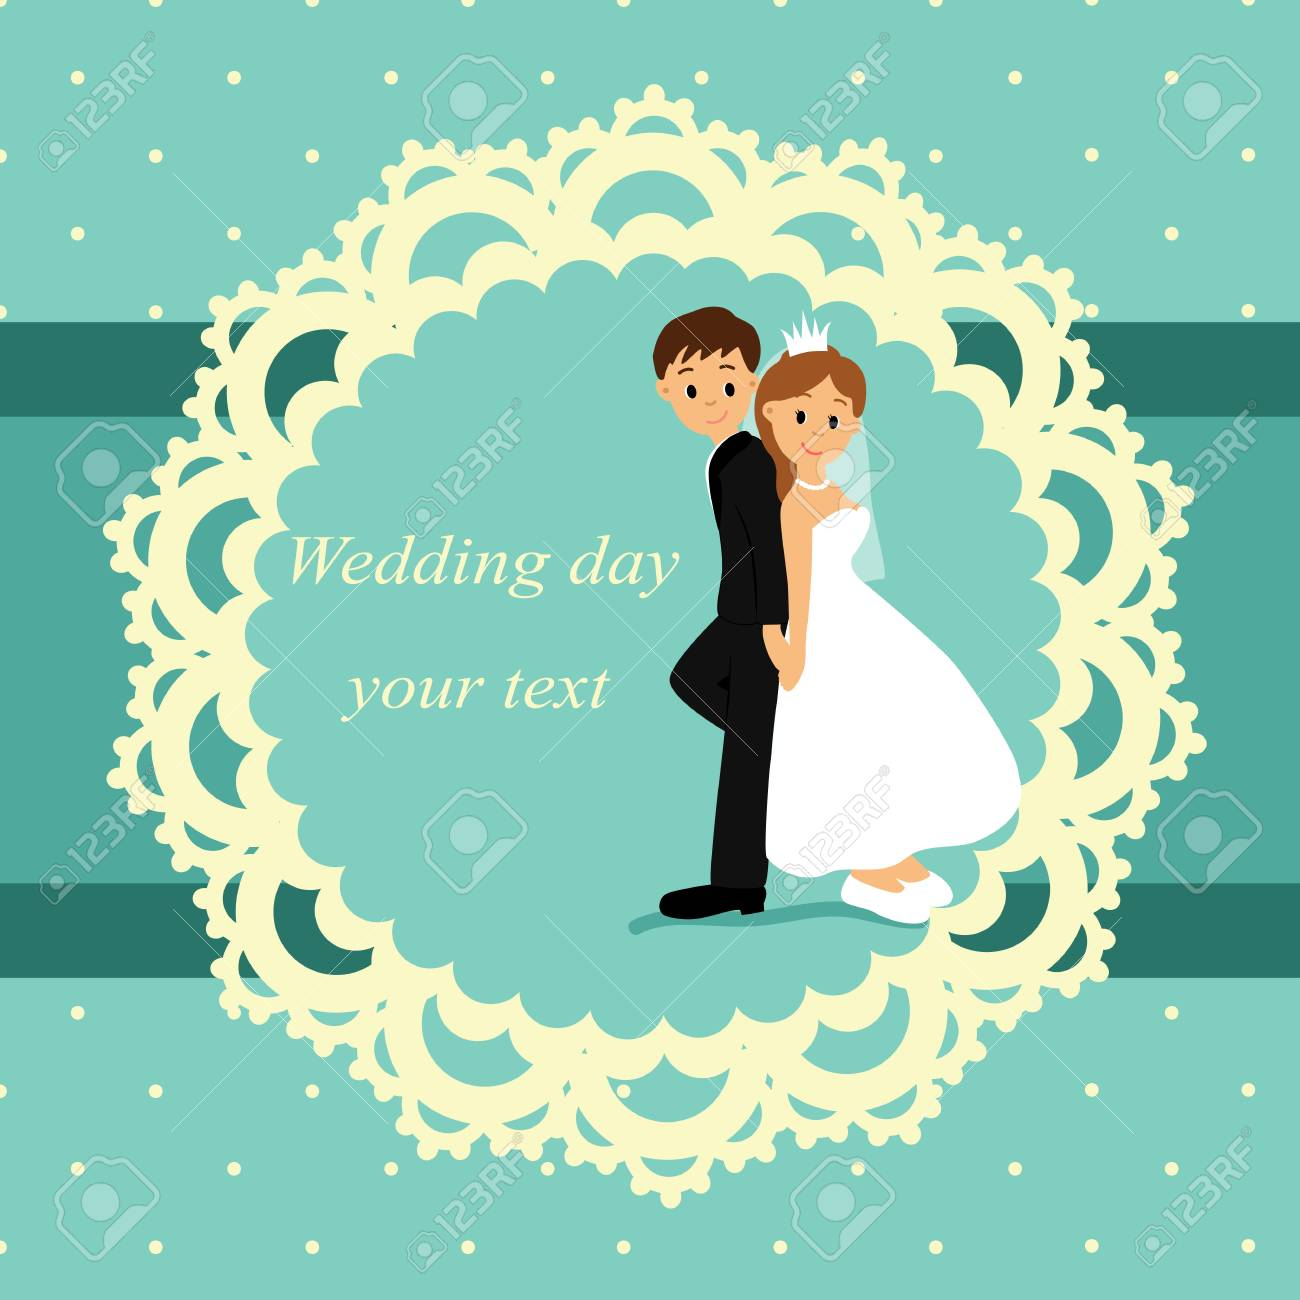 Invitation Card With The Bride And Groom In Vintage Style. Bride ...